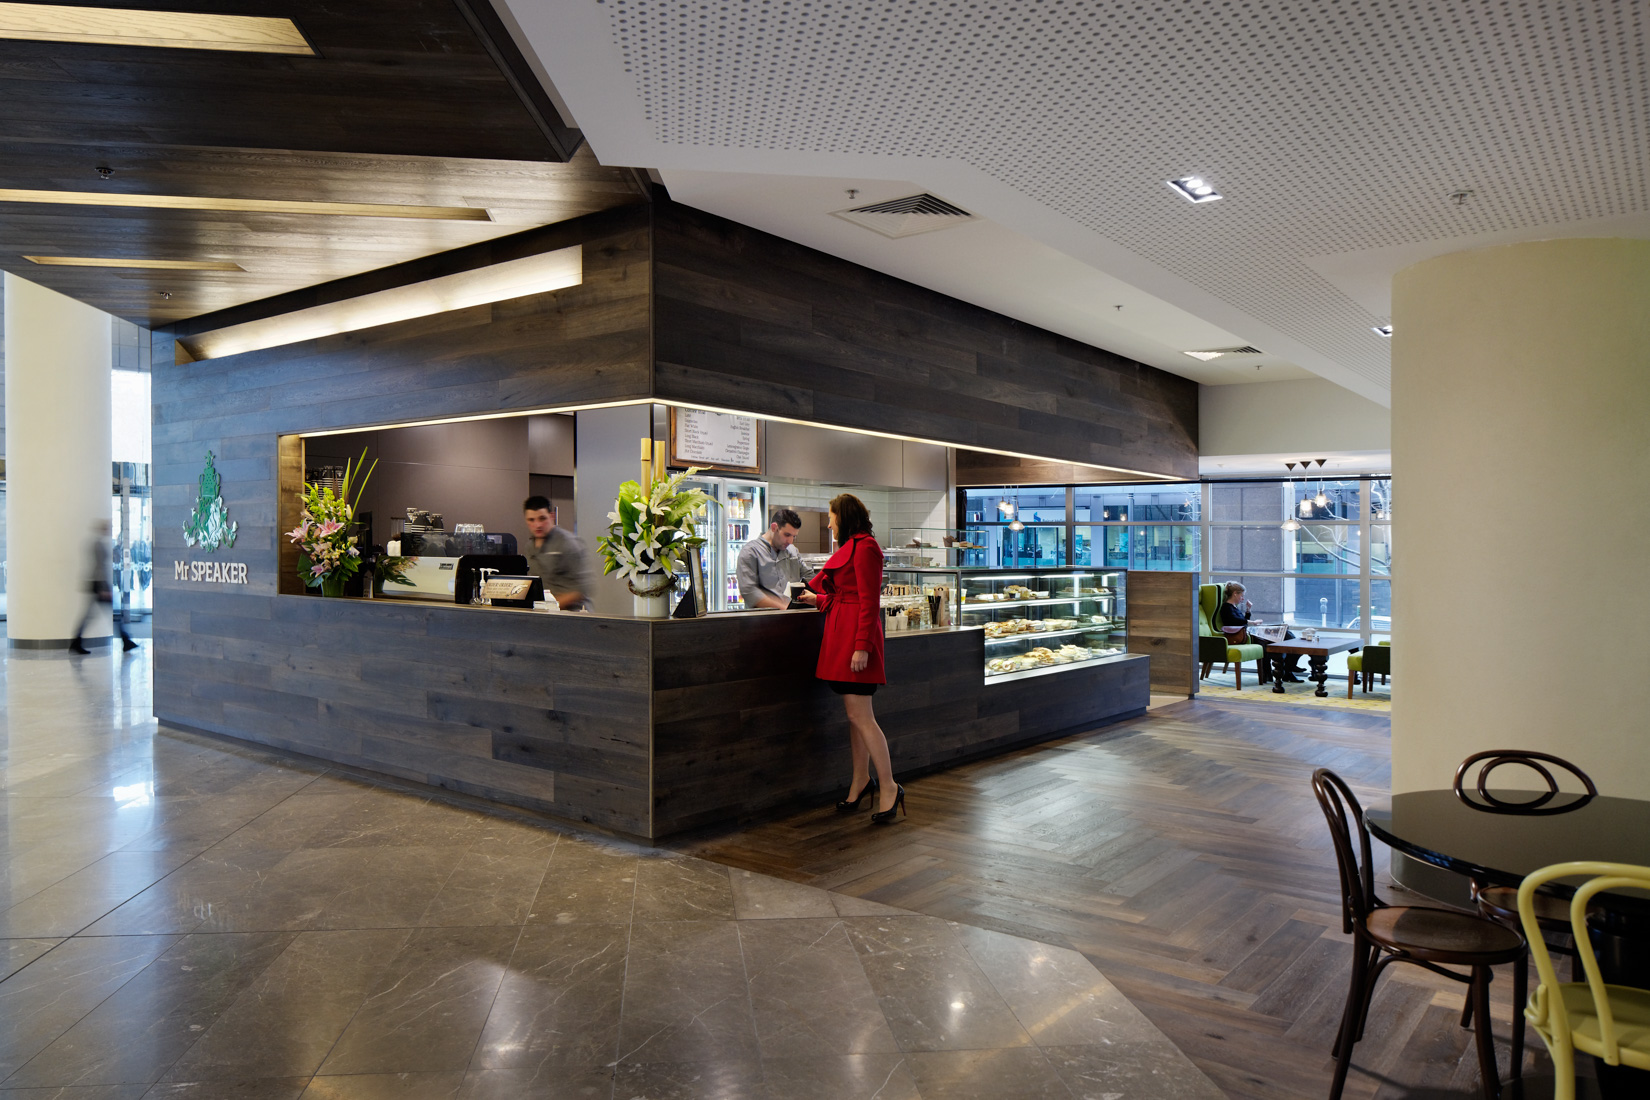 ISM Interiors created a light-filled entrance with new interior finishes and a café for Casseldon Place.